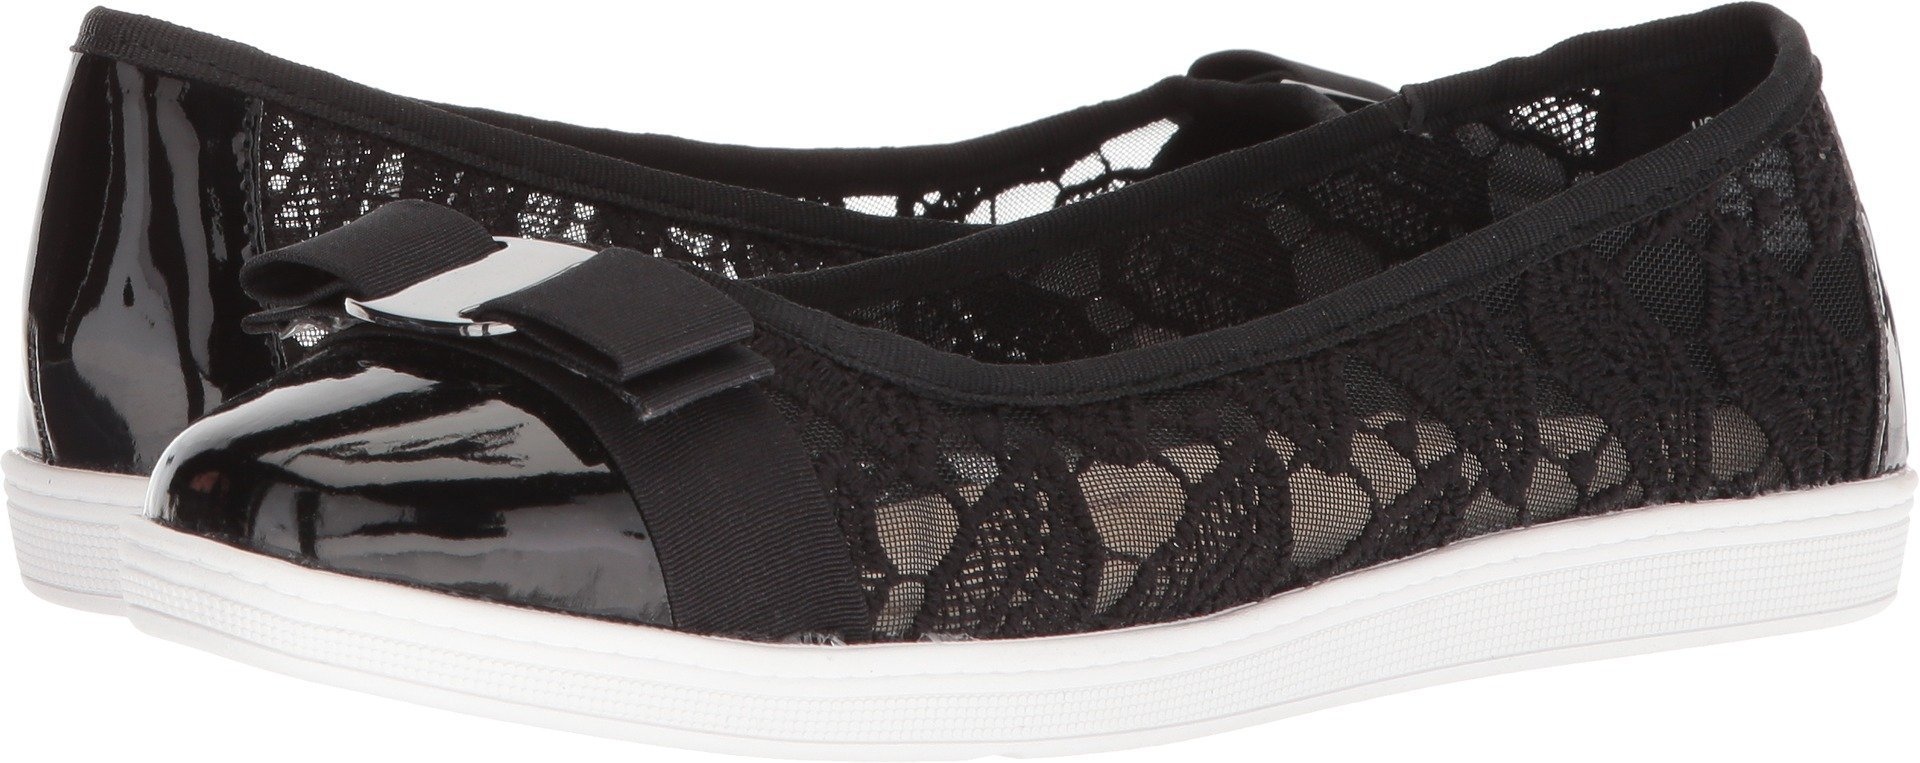 Soft Style by Hush Puppies Women's Fagan Loafer, Black Macrame, 06.0 M US